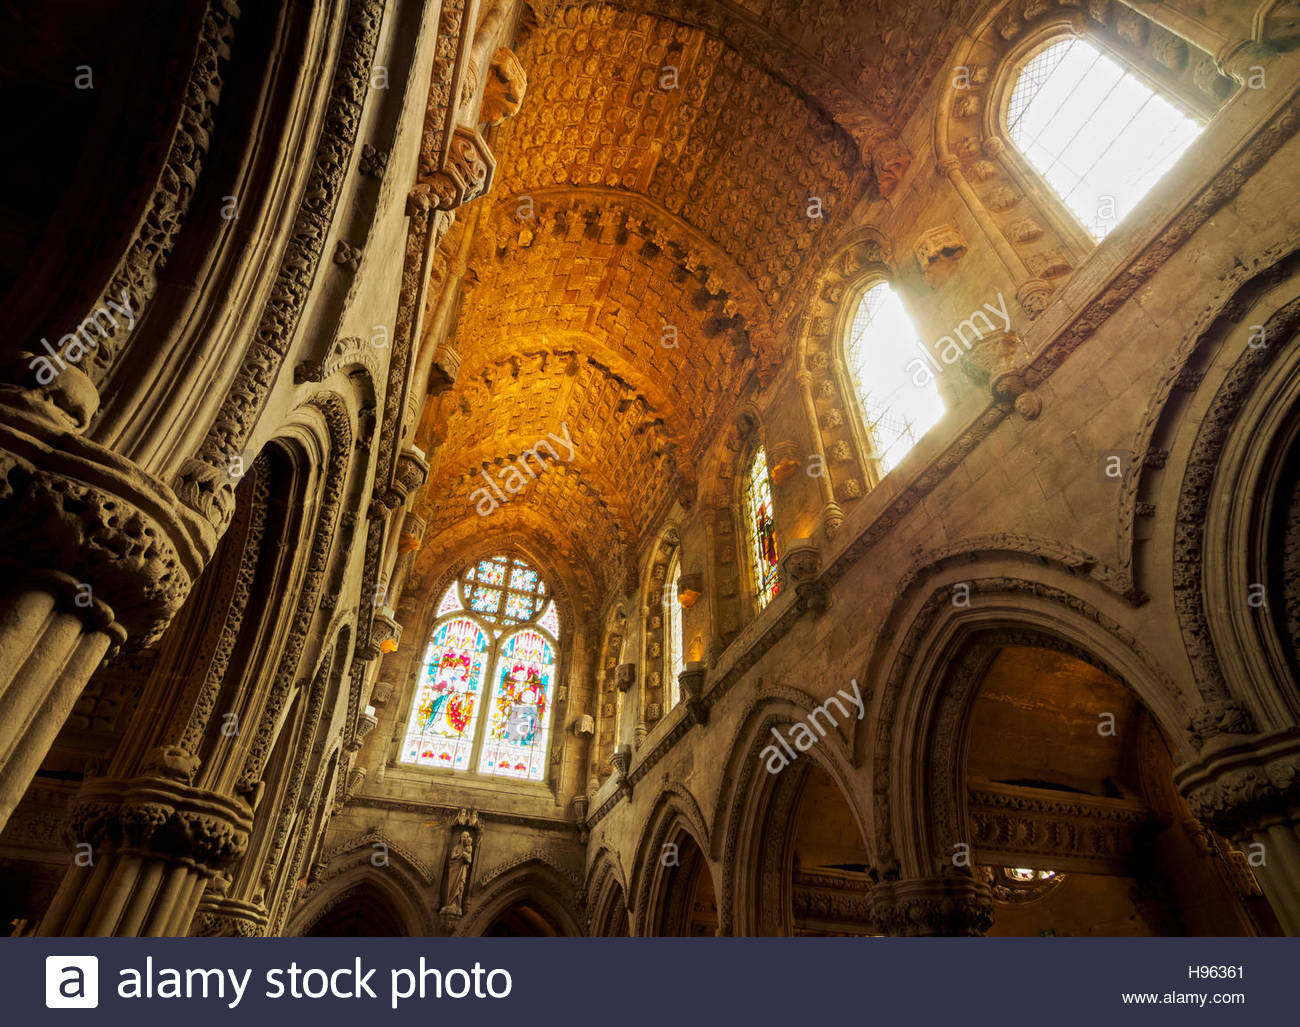 UK, Scotland, Midothian, Edinburgh Area, Roslin, interior view of the Rosslyn Chapel. - Stock Image